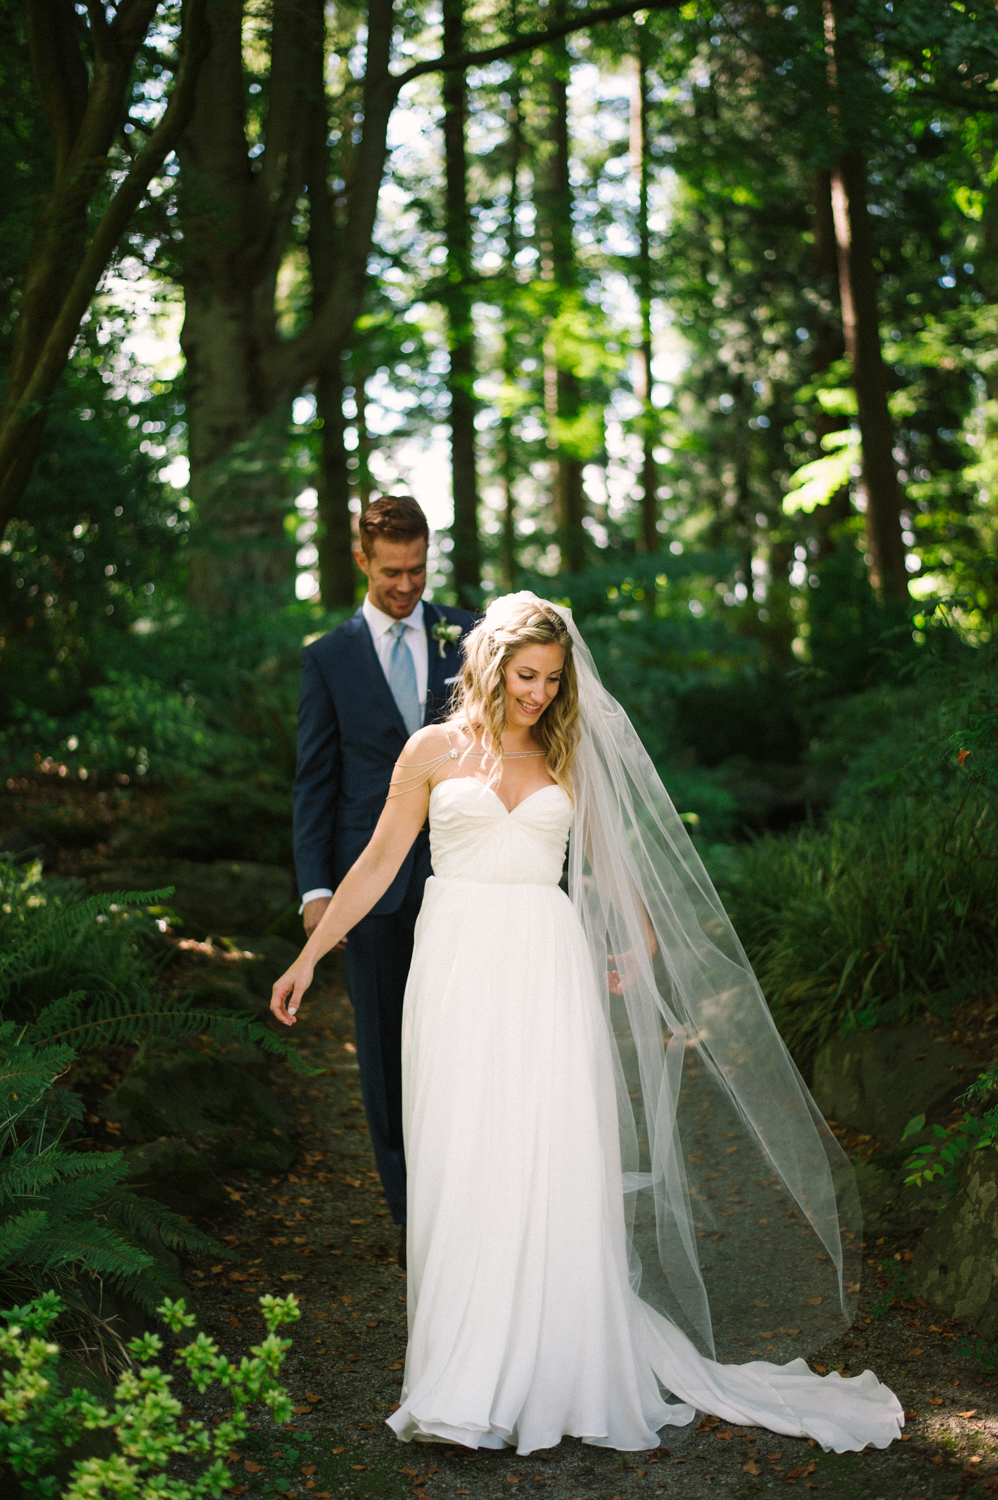 Stanely Park Wedding, Vancouver BC-Jessika Hunter-2.JPG